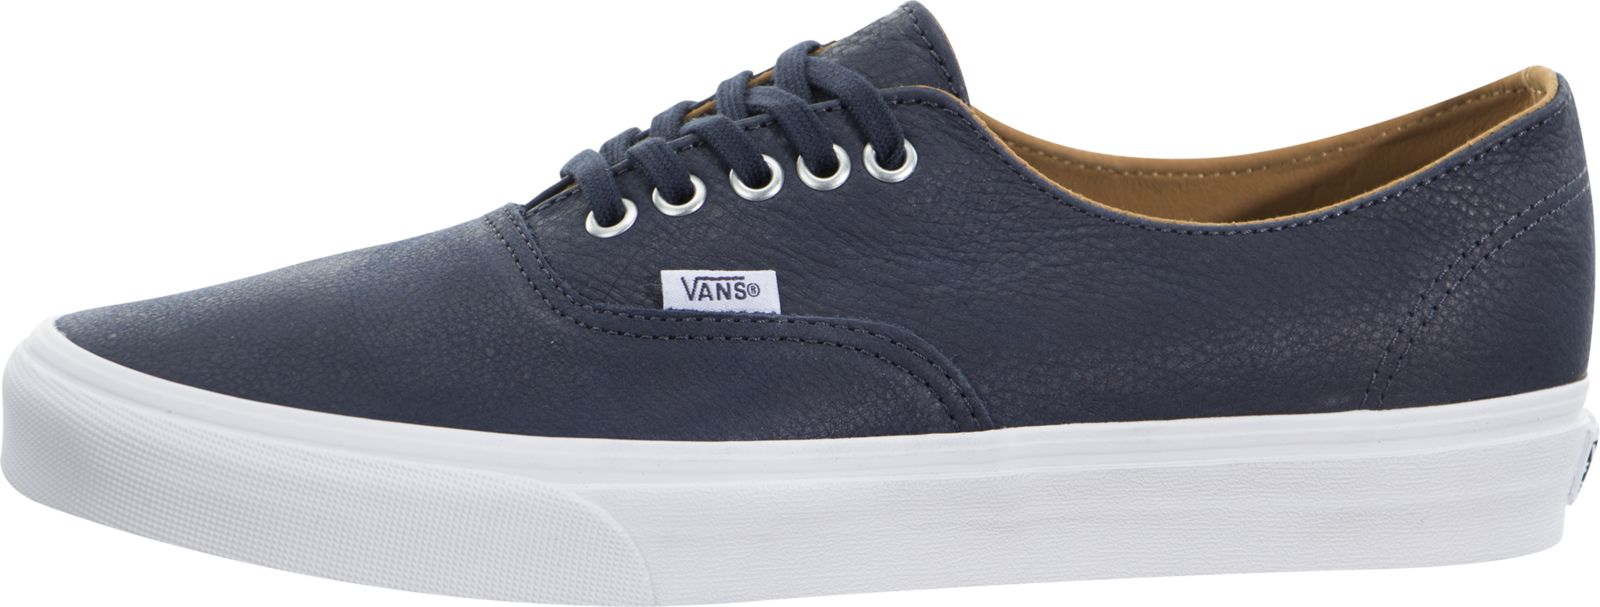 Vans Womens Authentic Decon Parisian Night Leather Trainers 40 EU